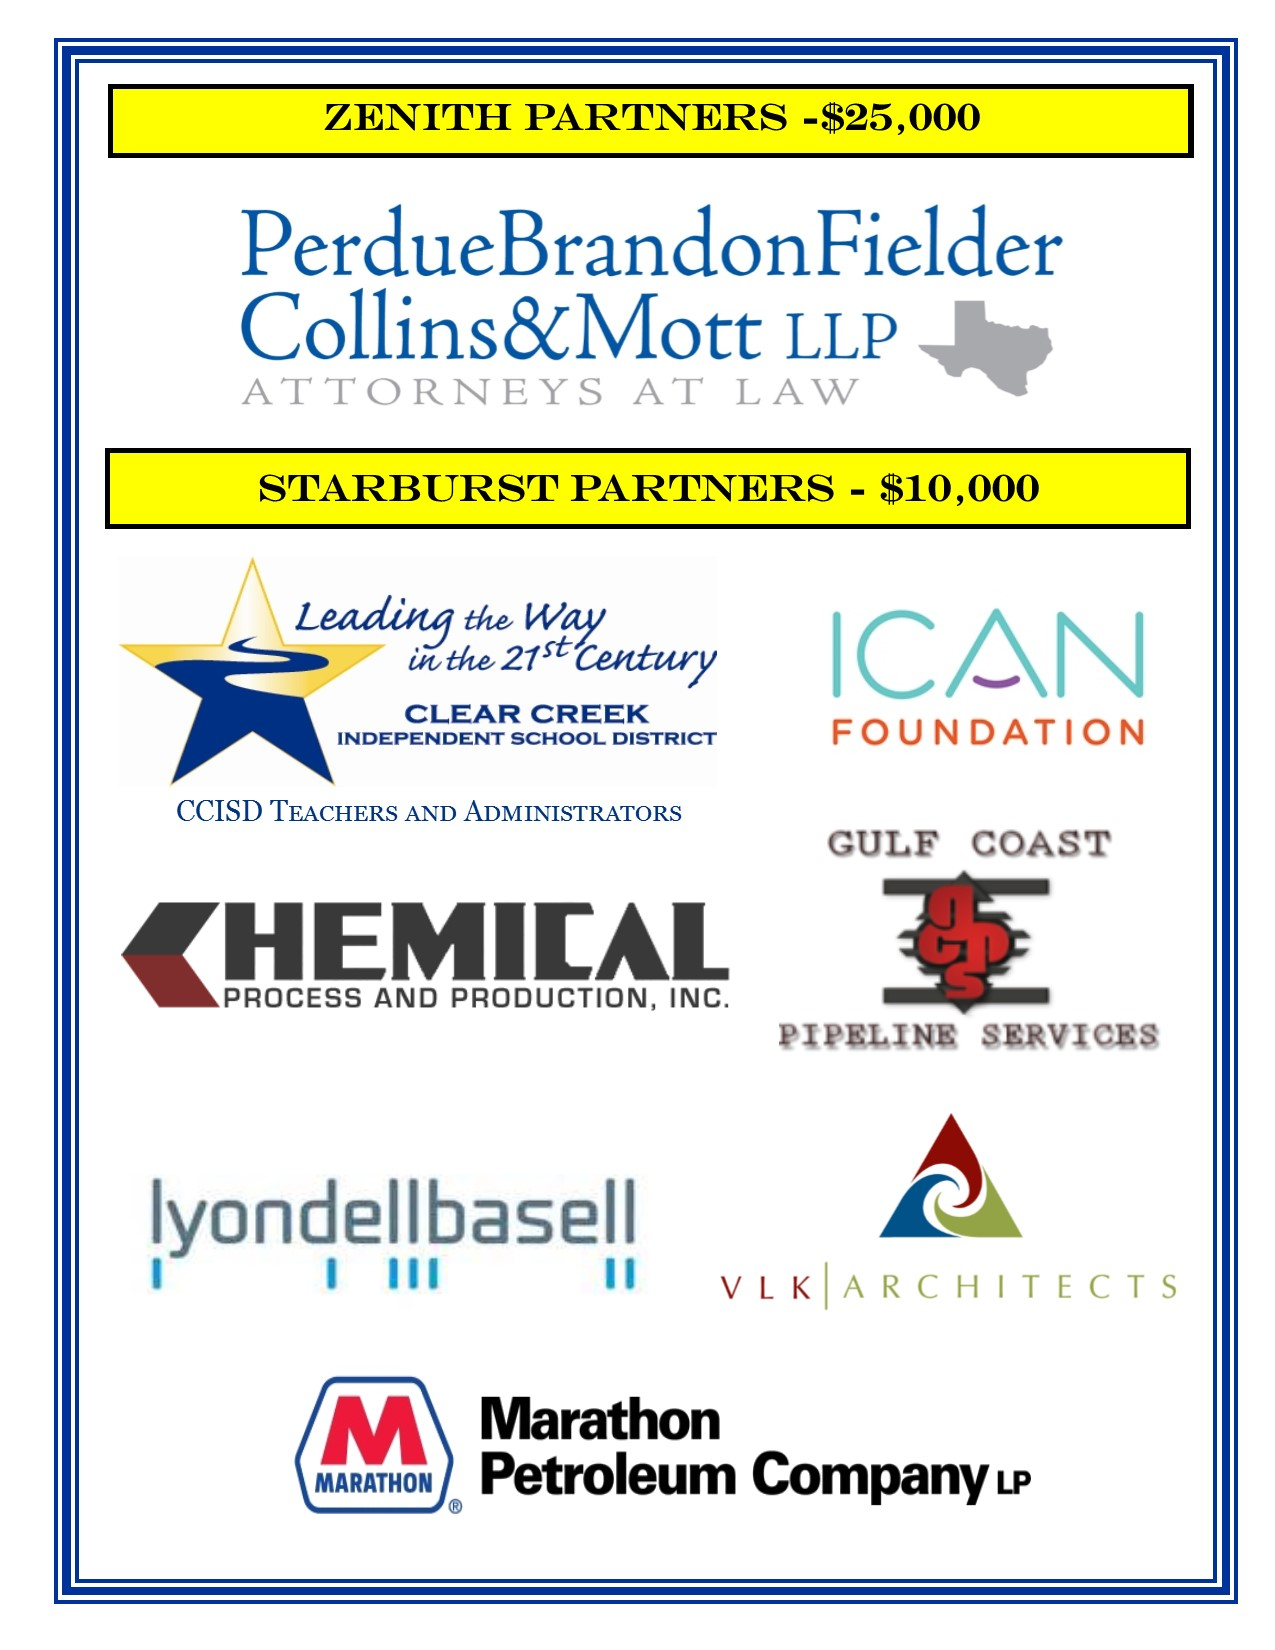 2017 Annual Campaign Donors - LOGOS - Sherri Changes